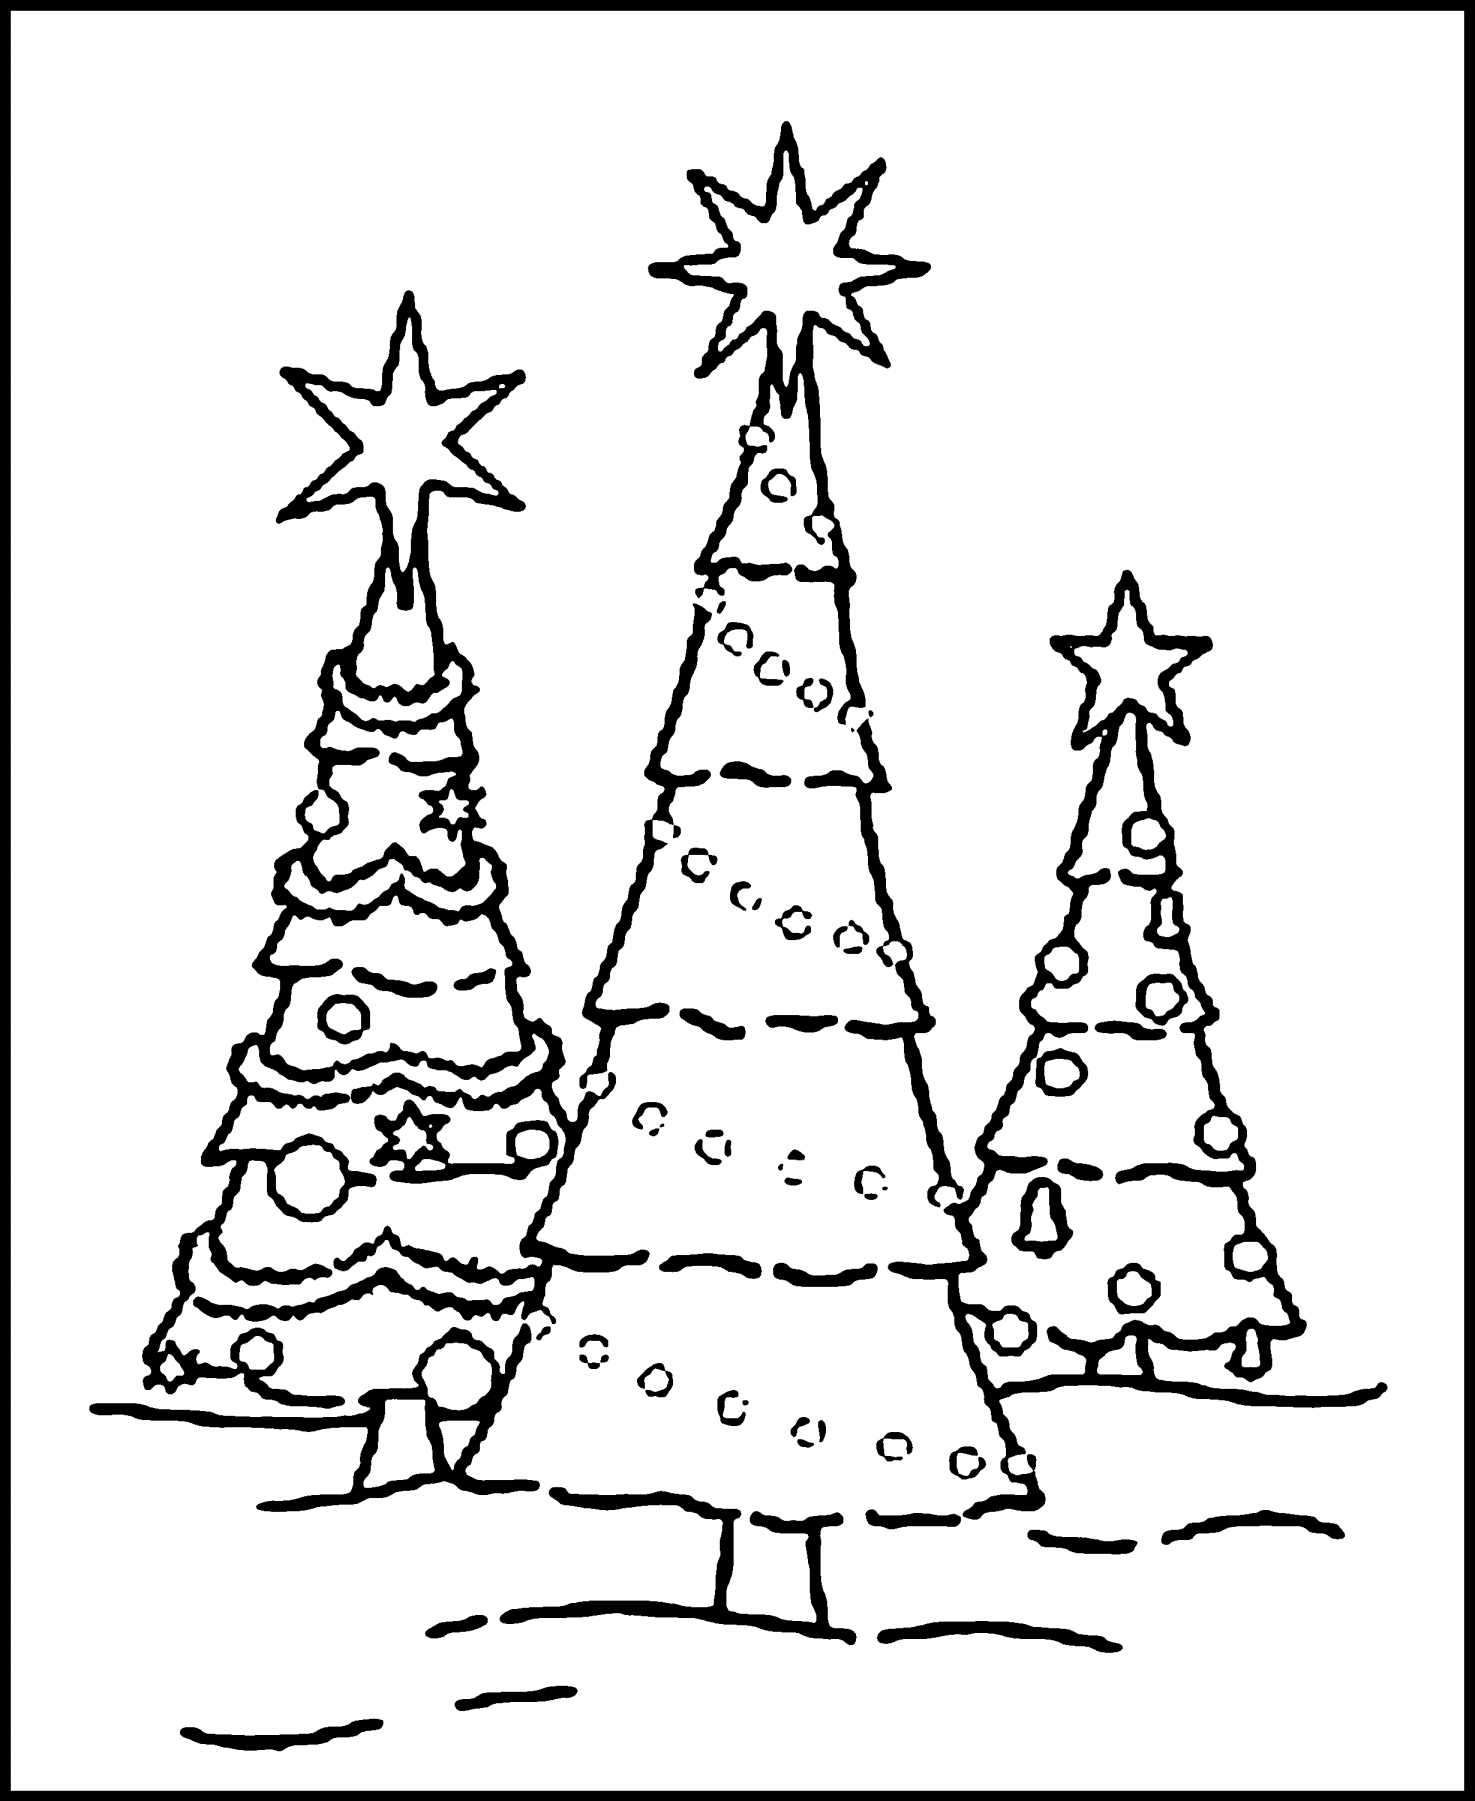 Santa Tree Coloring Page With Themed Christmas Trees Good Claus